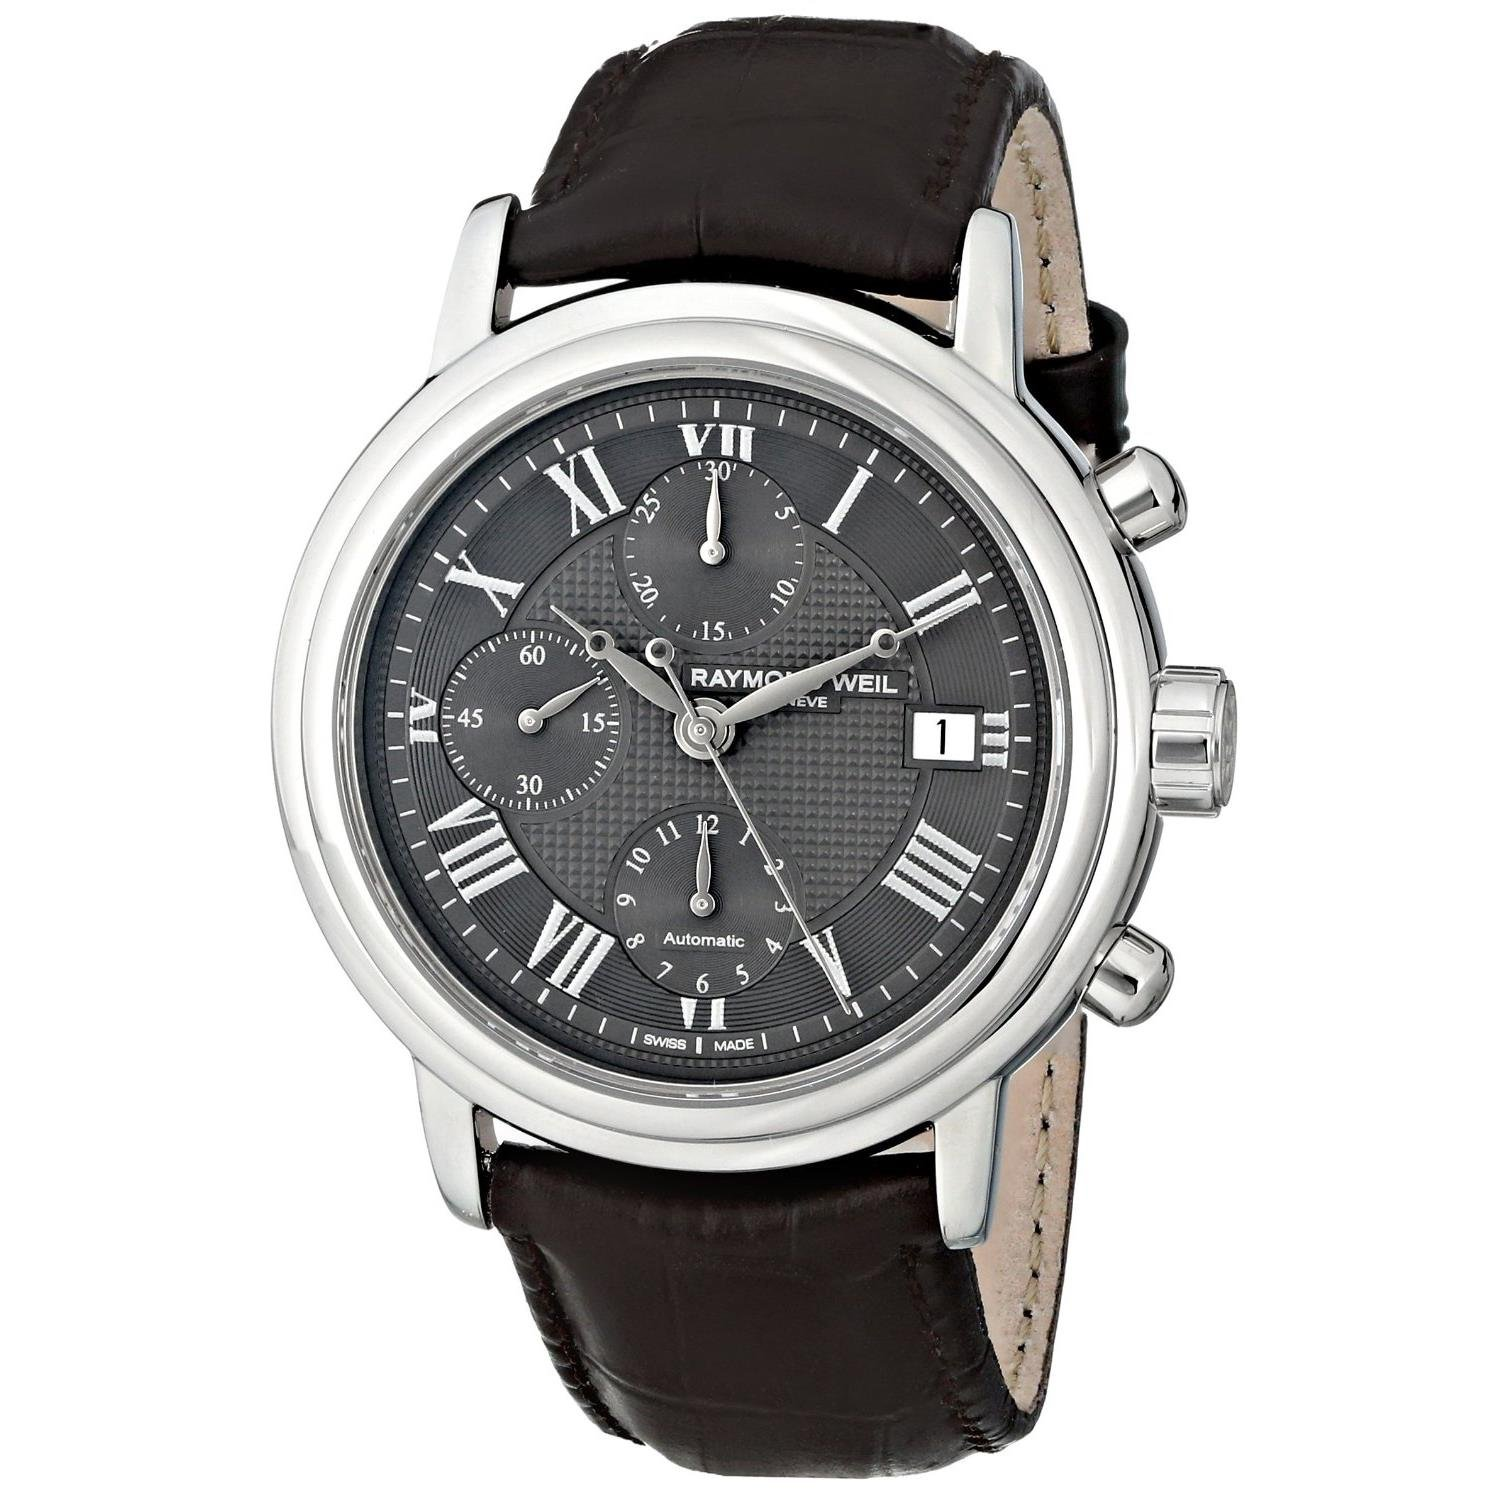 88 Rue du Rhone Men s 87WA120048 Stainless Steel Watch with Black Leather Strap